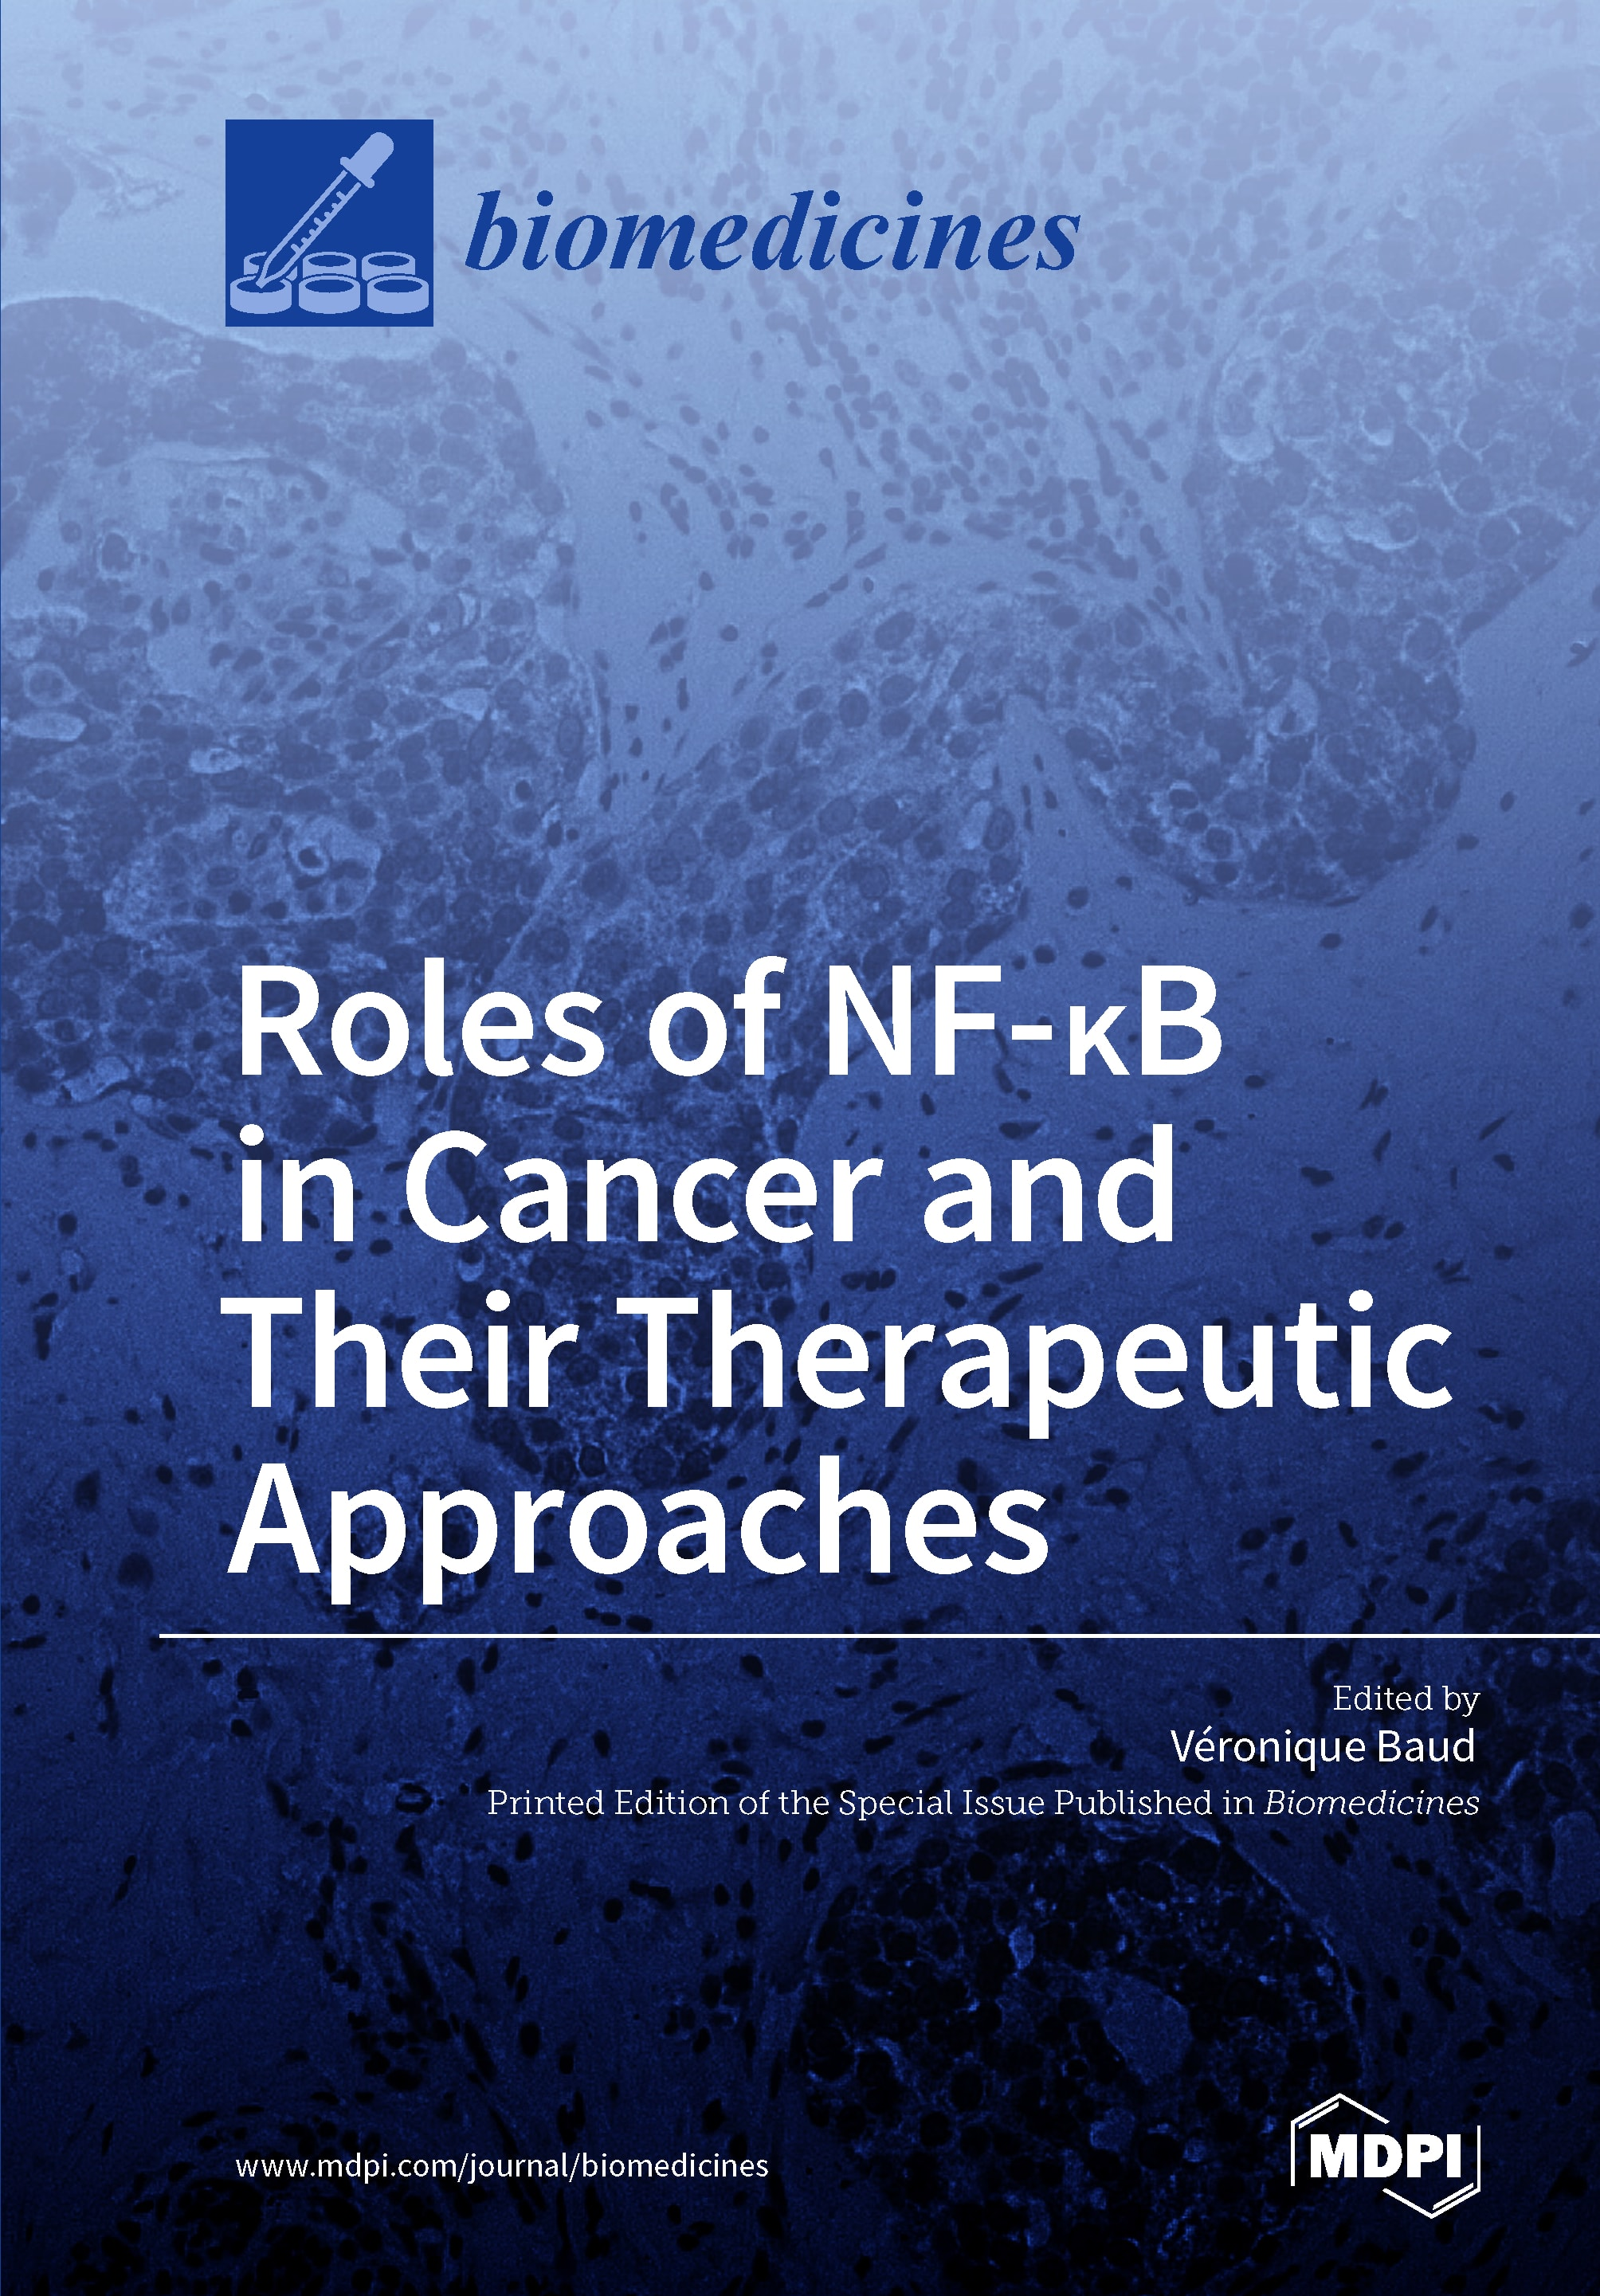 Roles of NF-κB in Cancer and Their Therapeutic Approaches